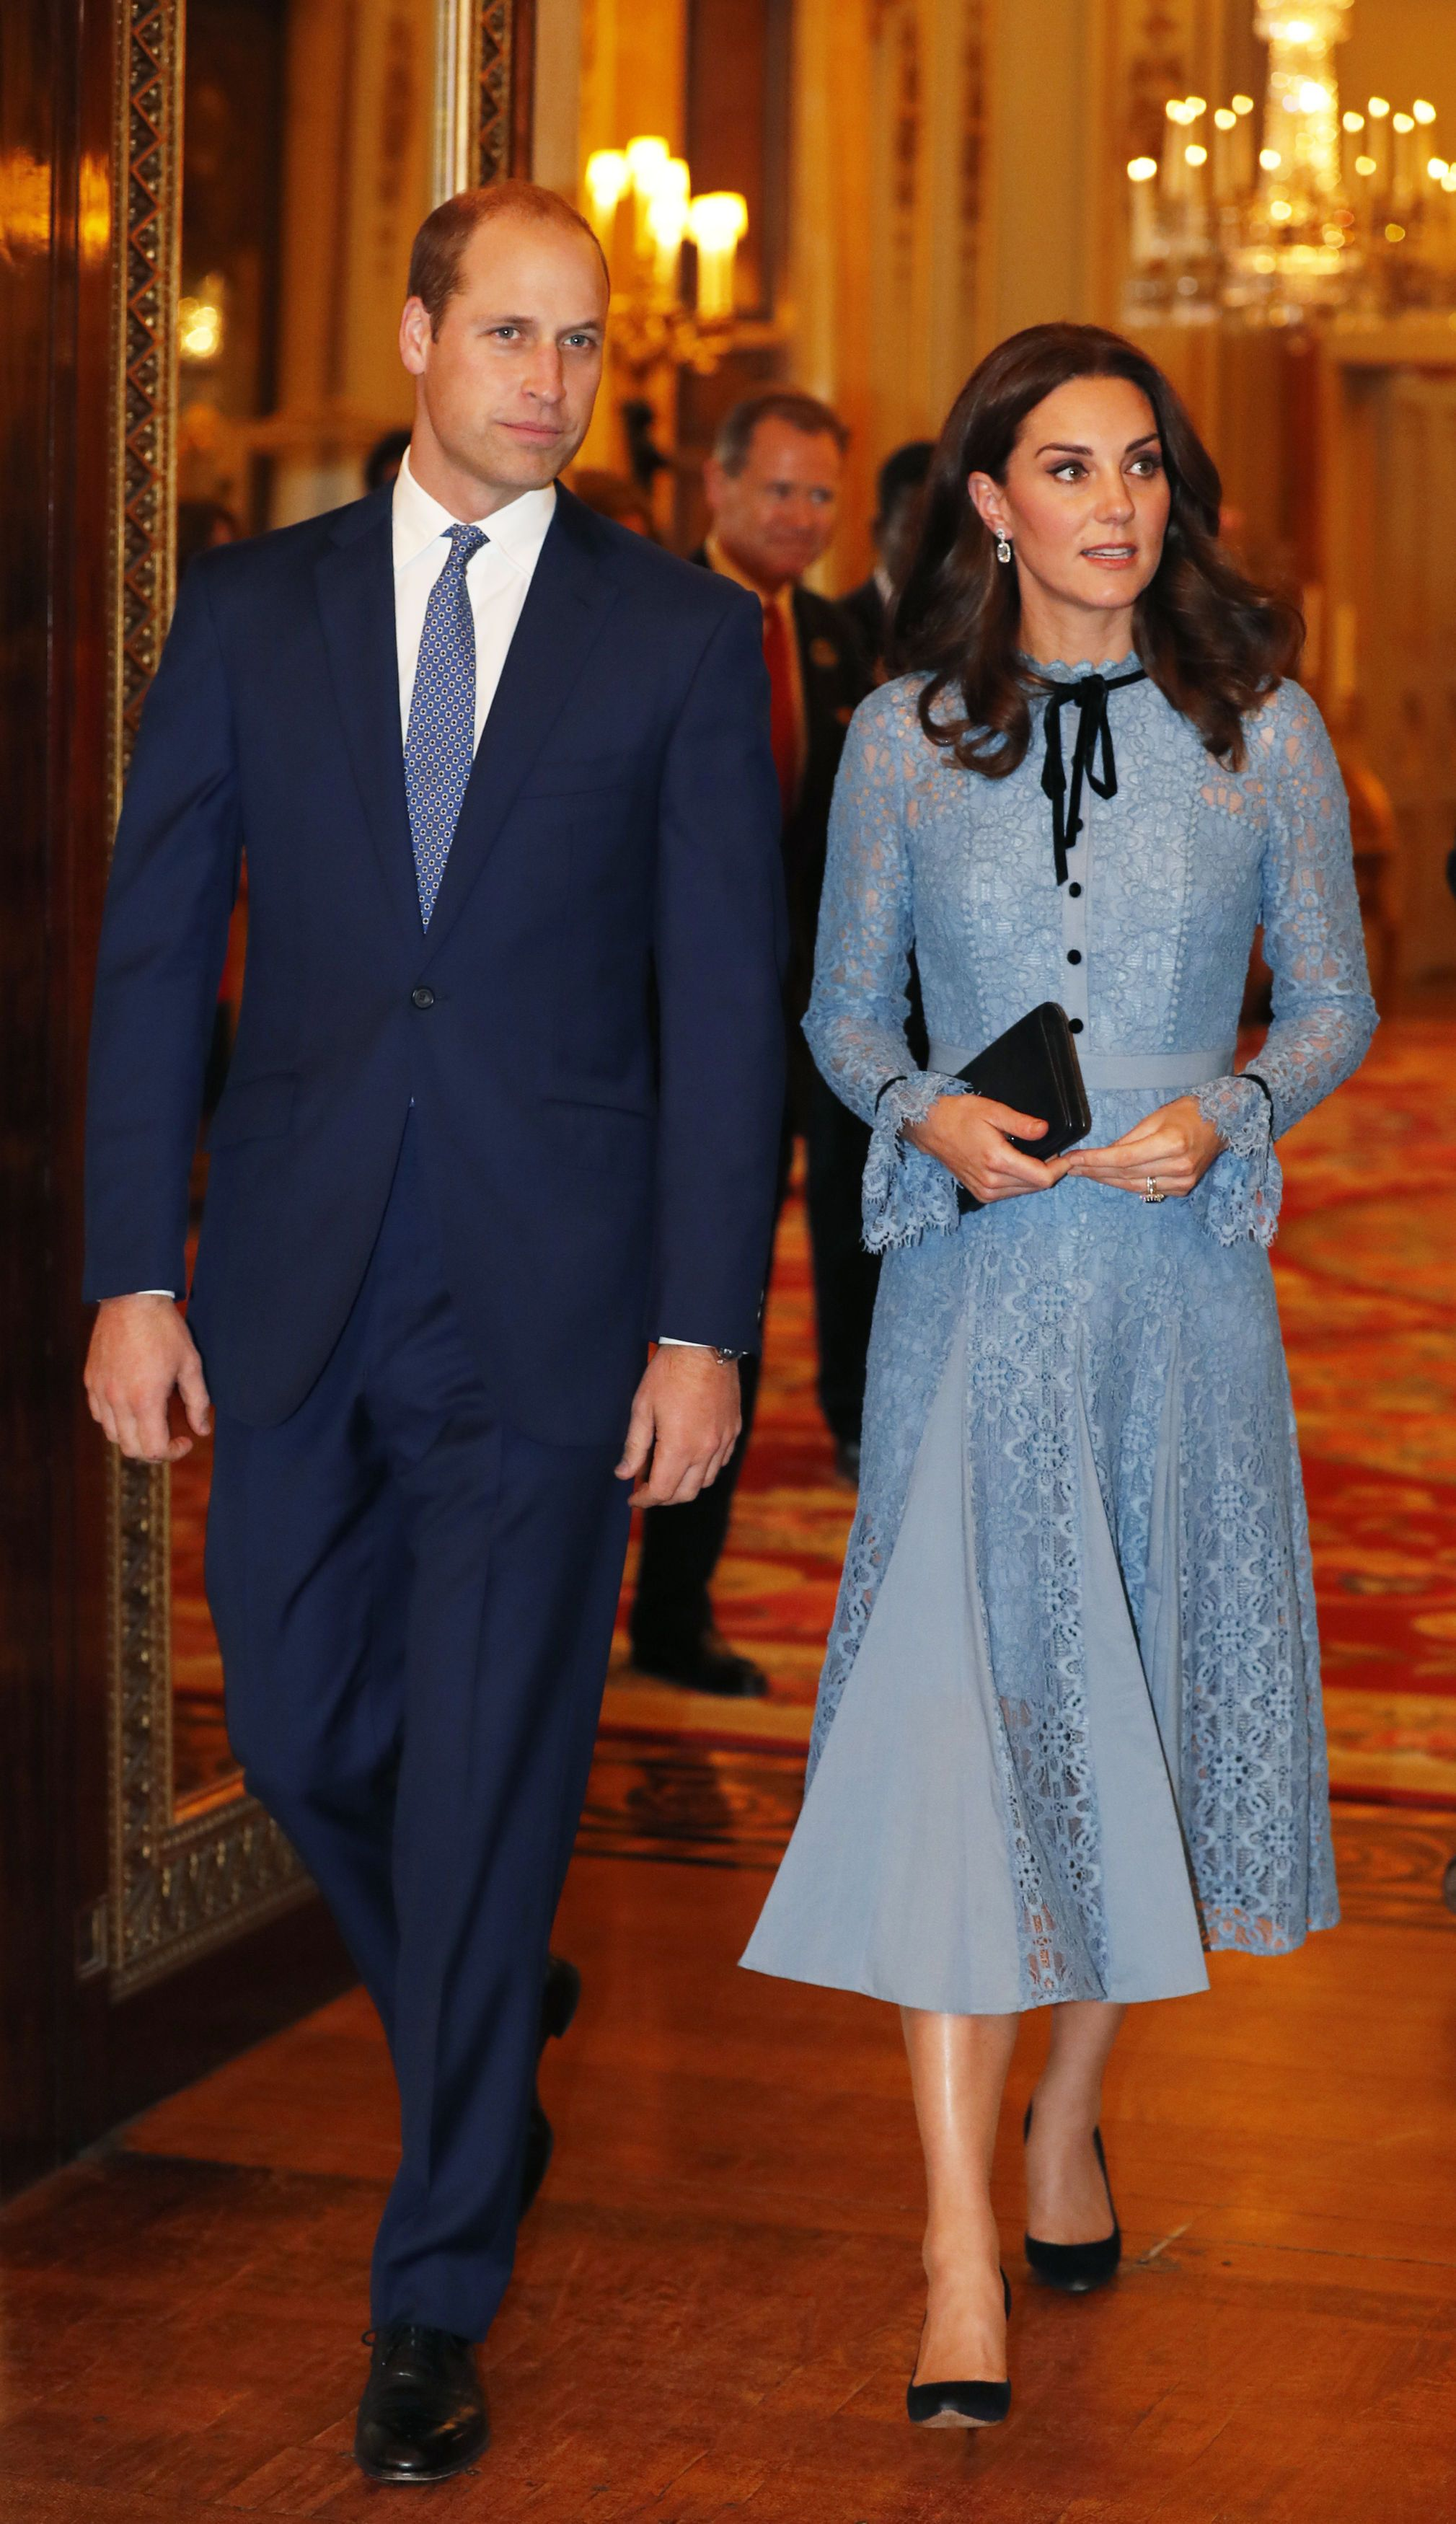 Duchess Of Cambridge Makes First Public Appearance Since Announcing Third